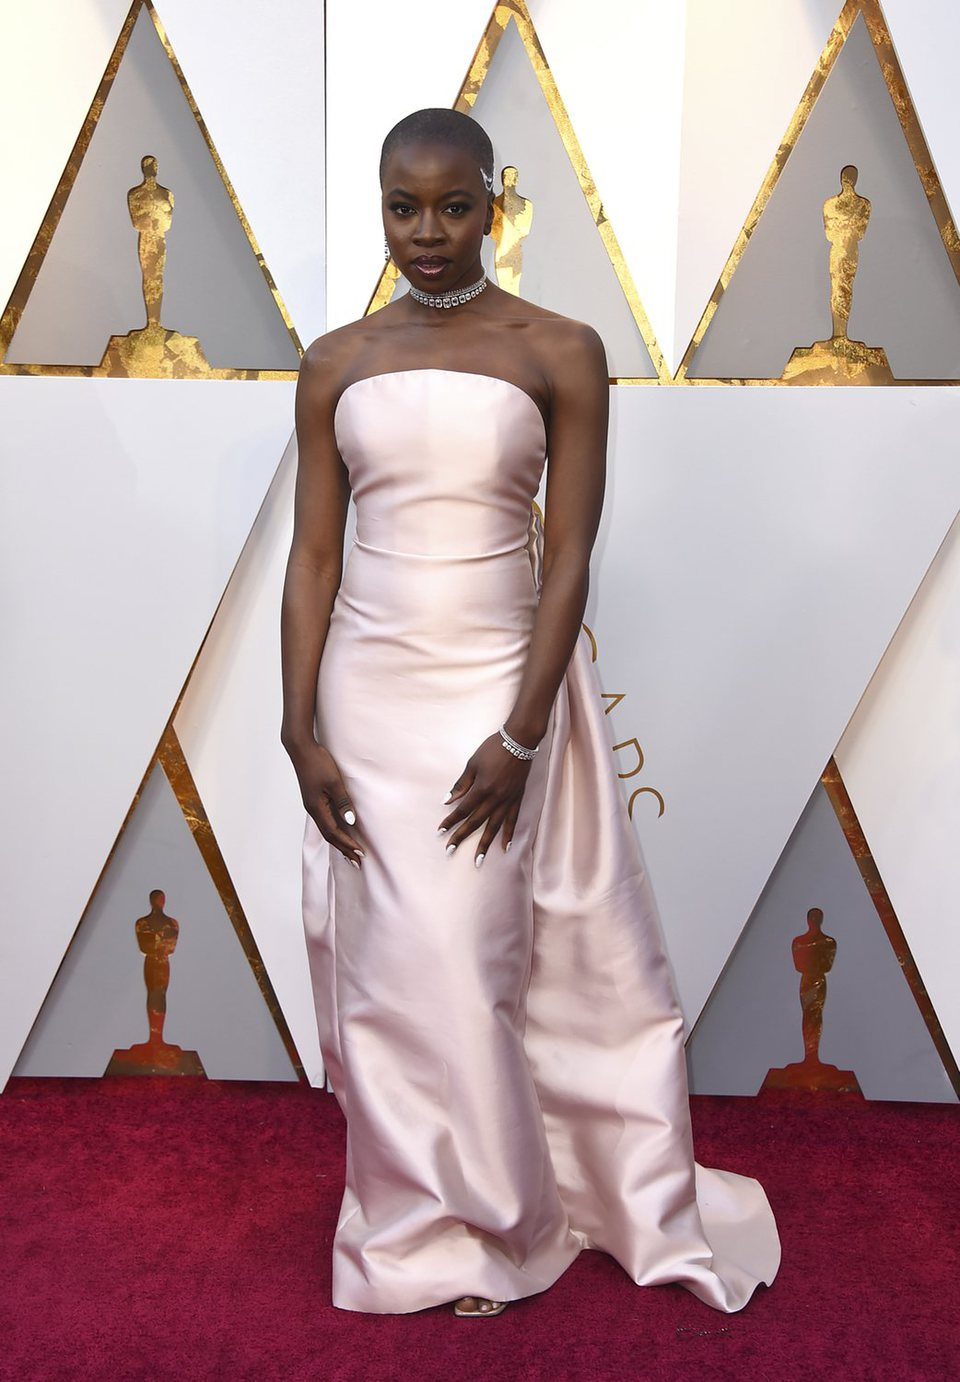 Danai Gurira at the red carpet of the Oscars